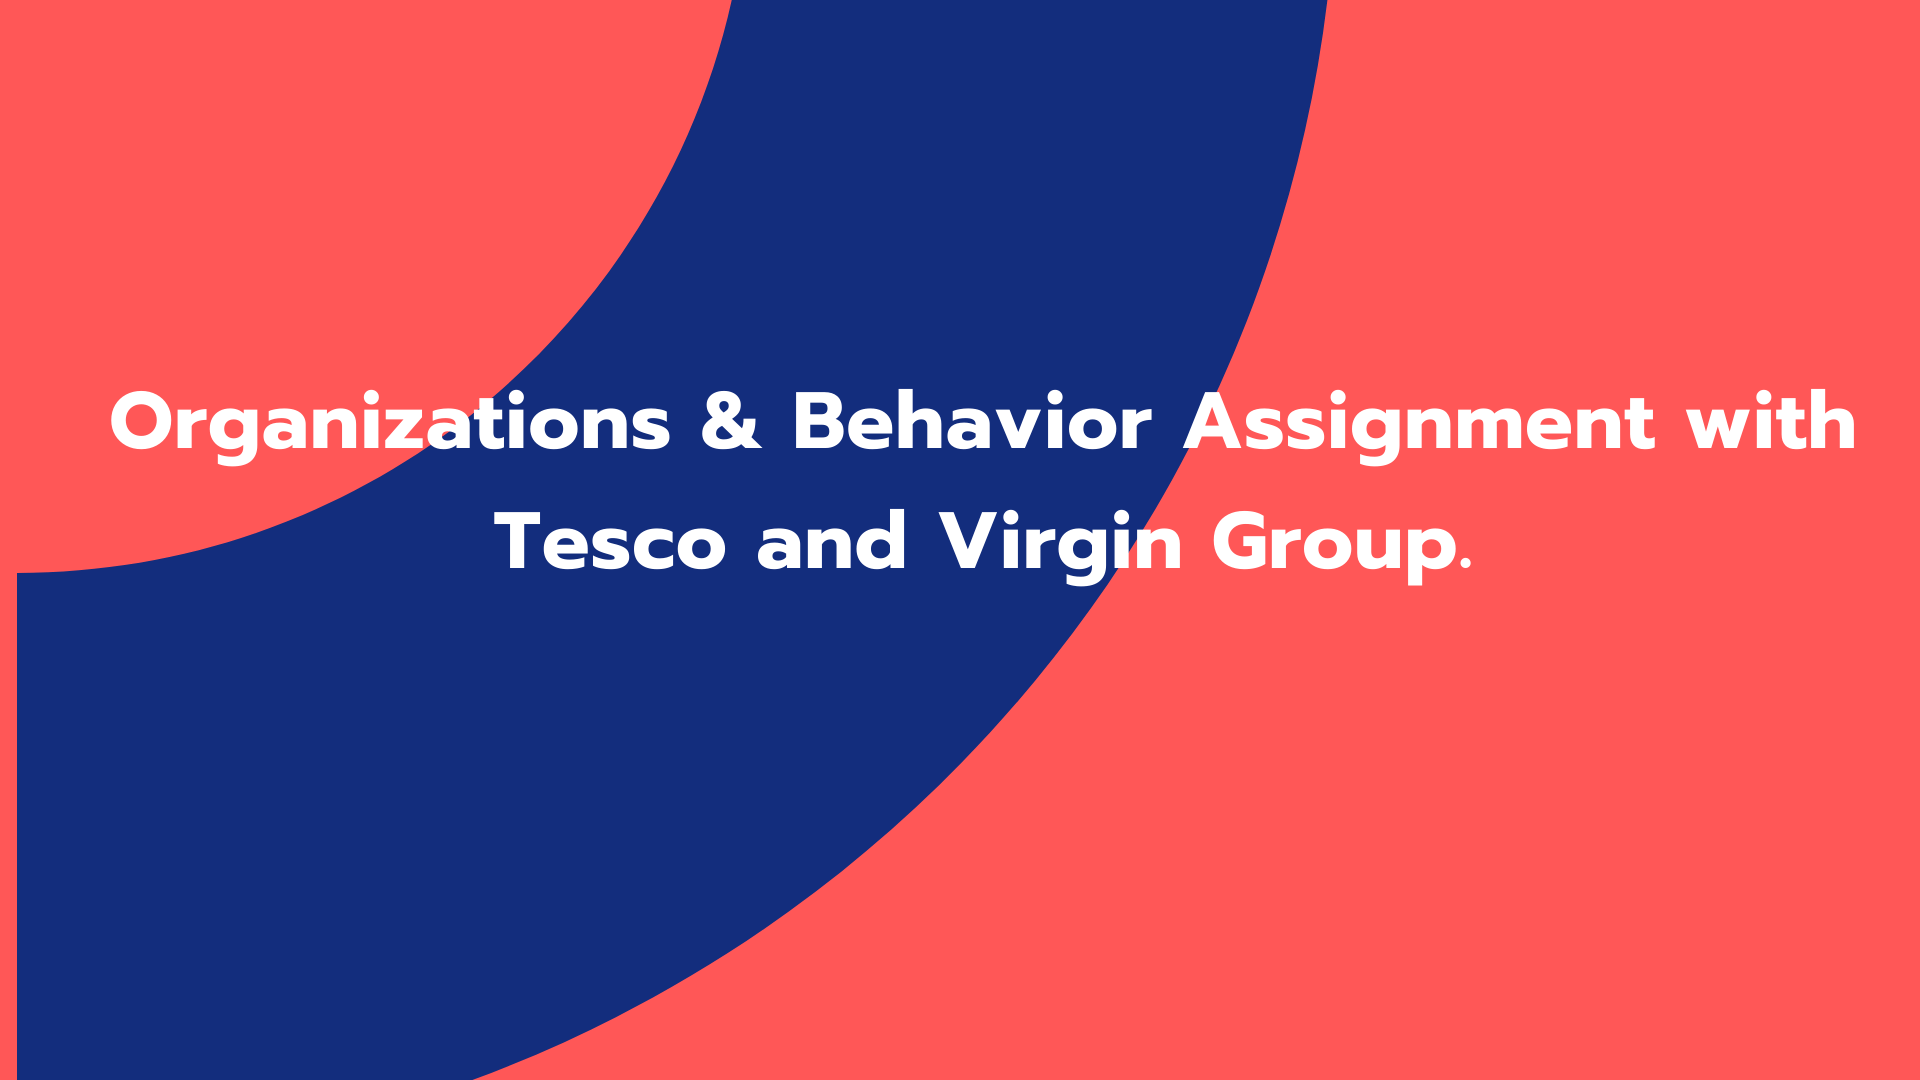 Organizations & Behavior Assignment with Tesco and Virgin Group.